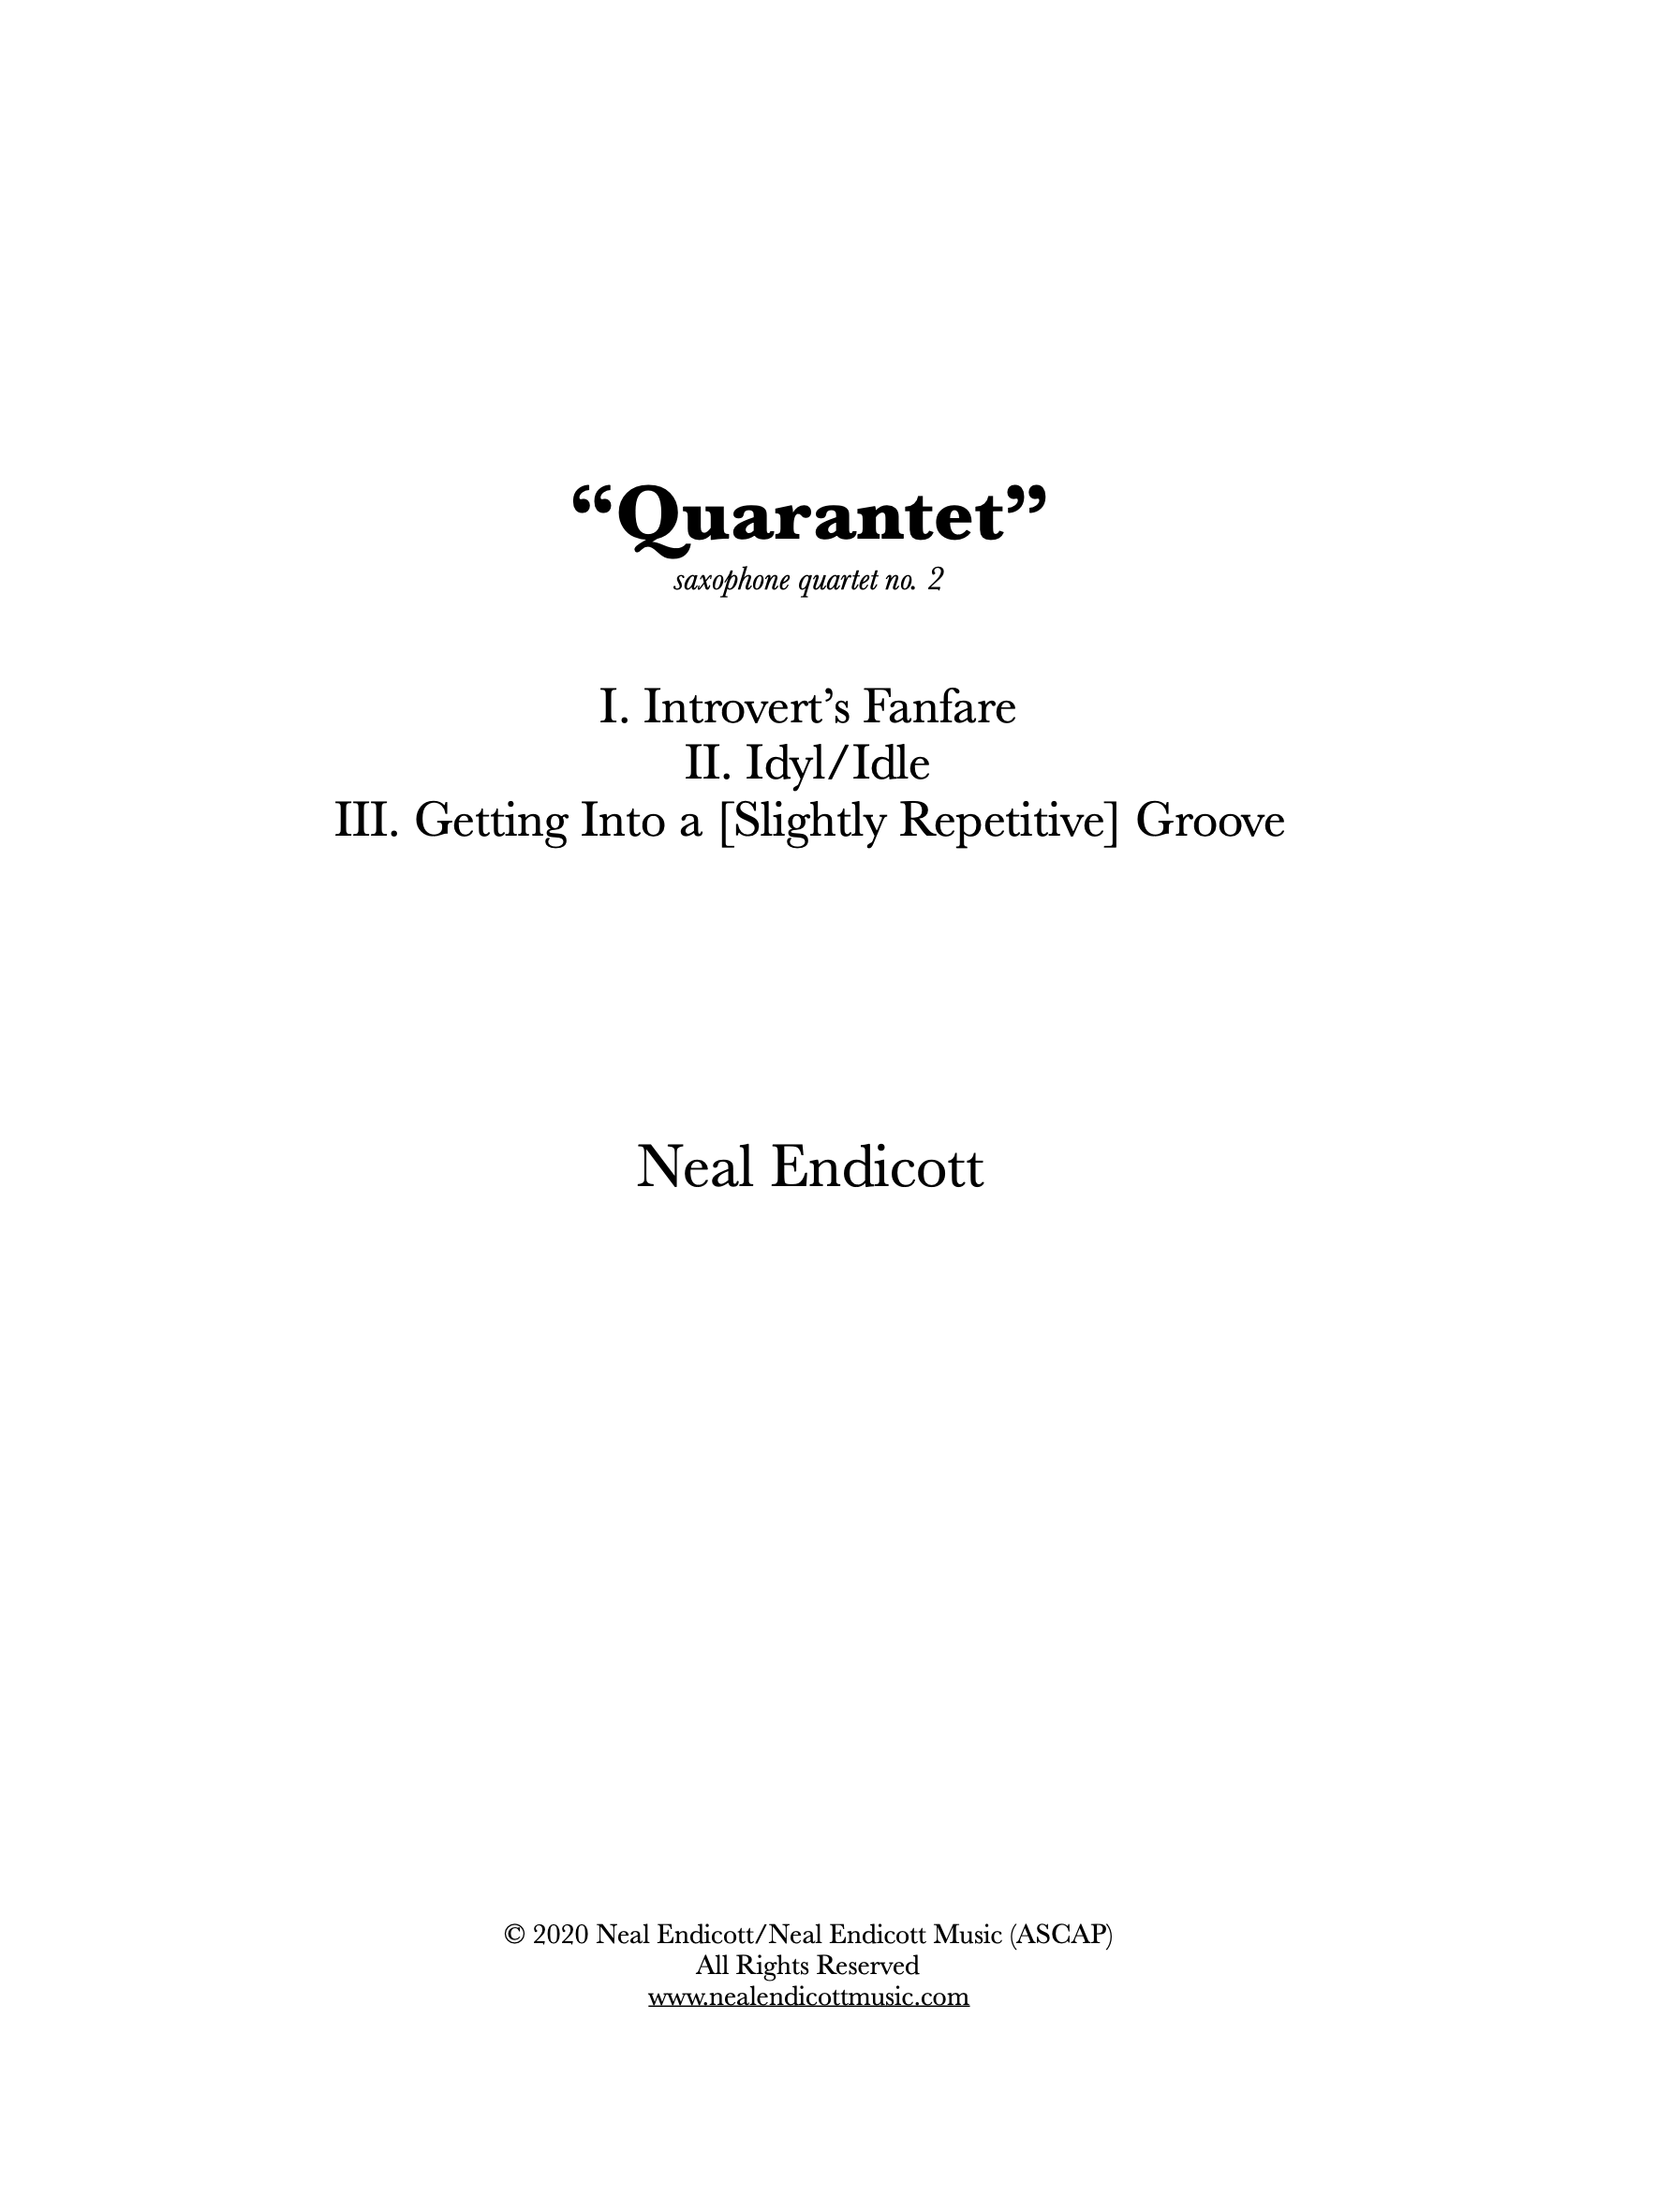 Quarantet by Neal Endicott